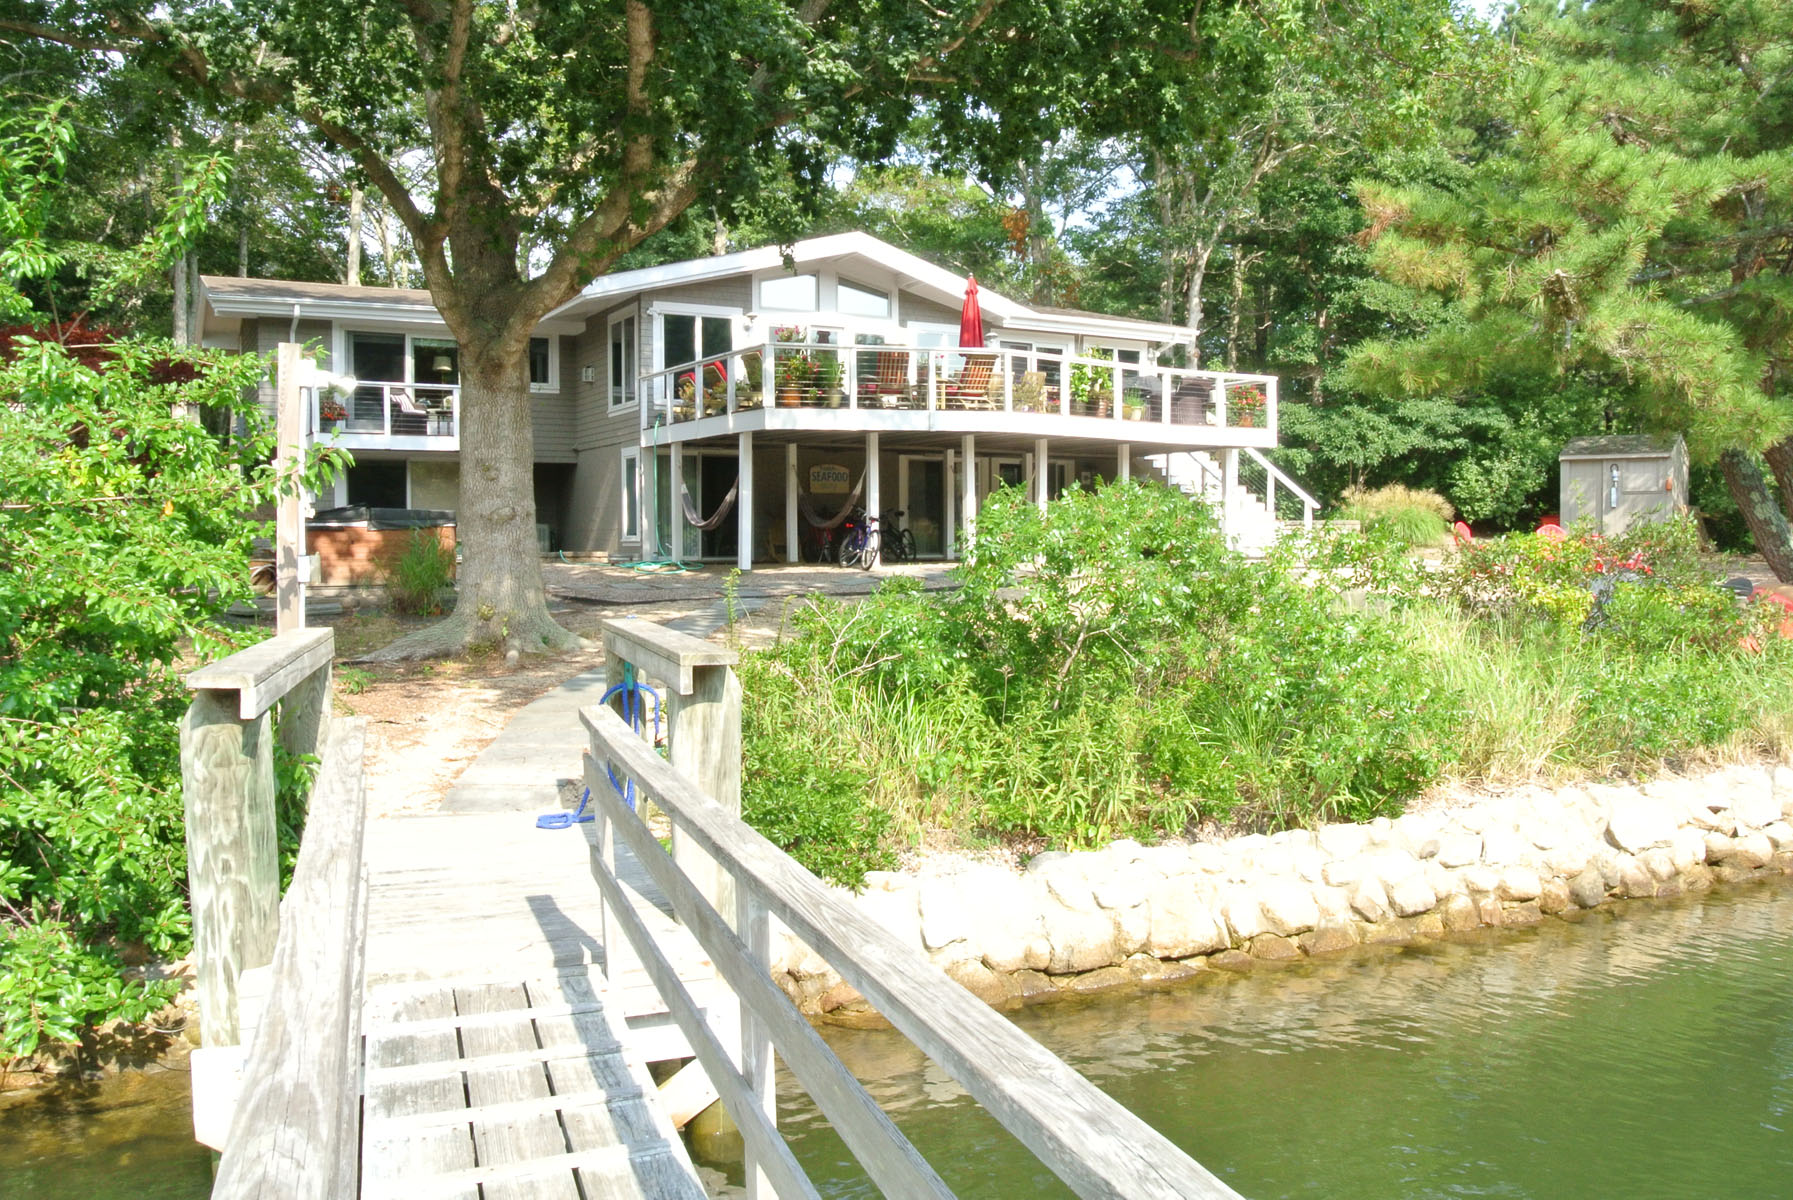 Moradia para Venda às WATERFRONT HOME WITH DOCK 14 Capstan Circle New Seabury, Massachusetts, 02649 Estados Unidos